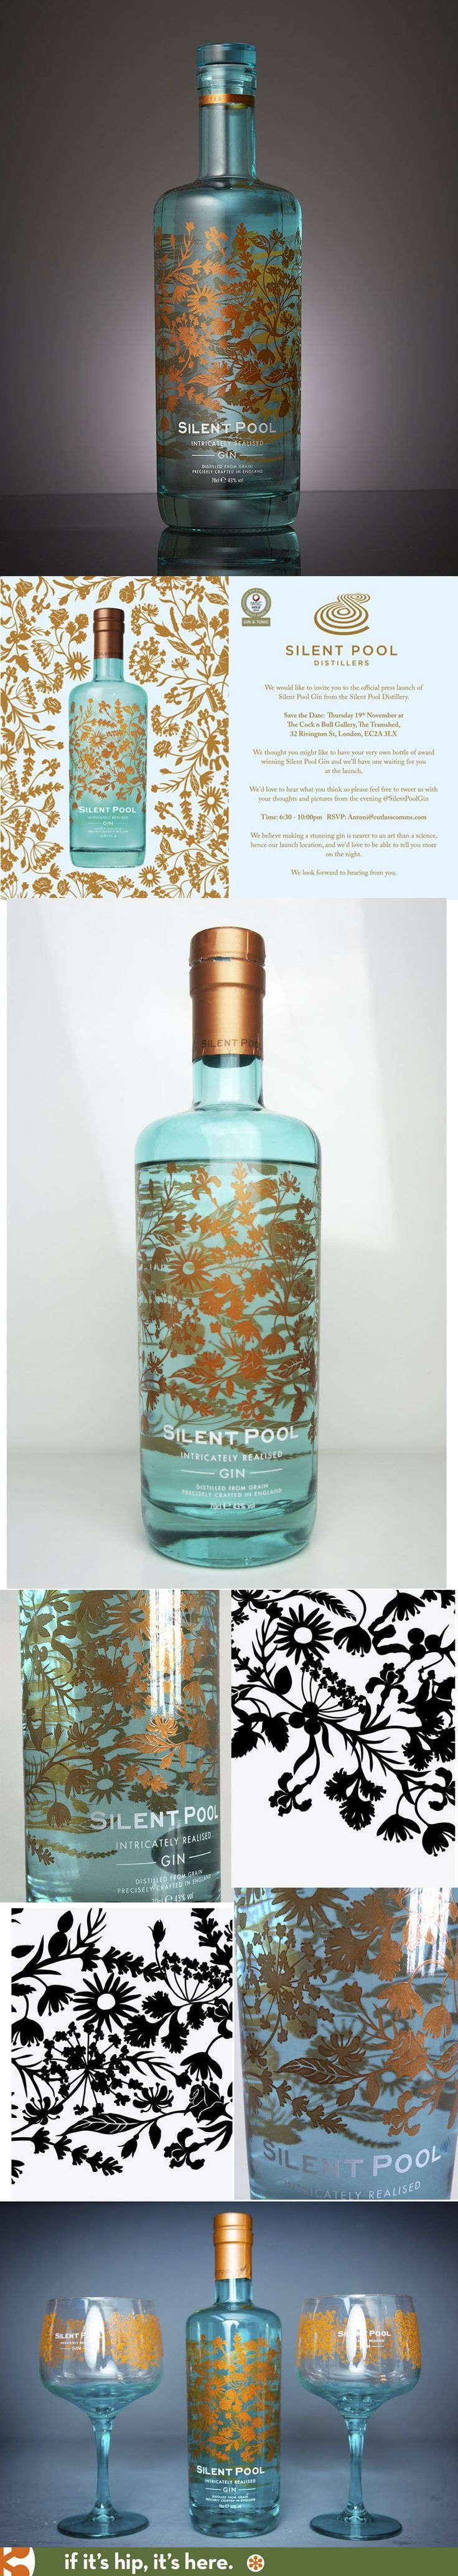 Silent Pool Gin with bottle design by Laura Barrett and agency SeymourPowell